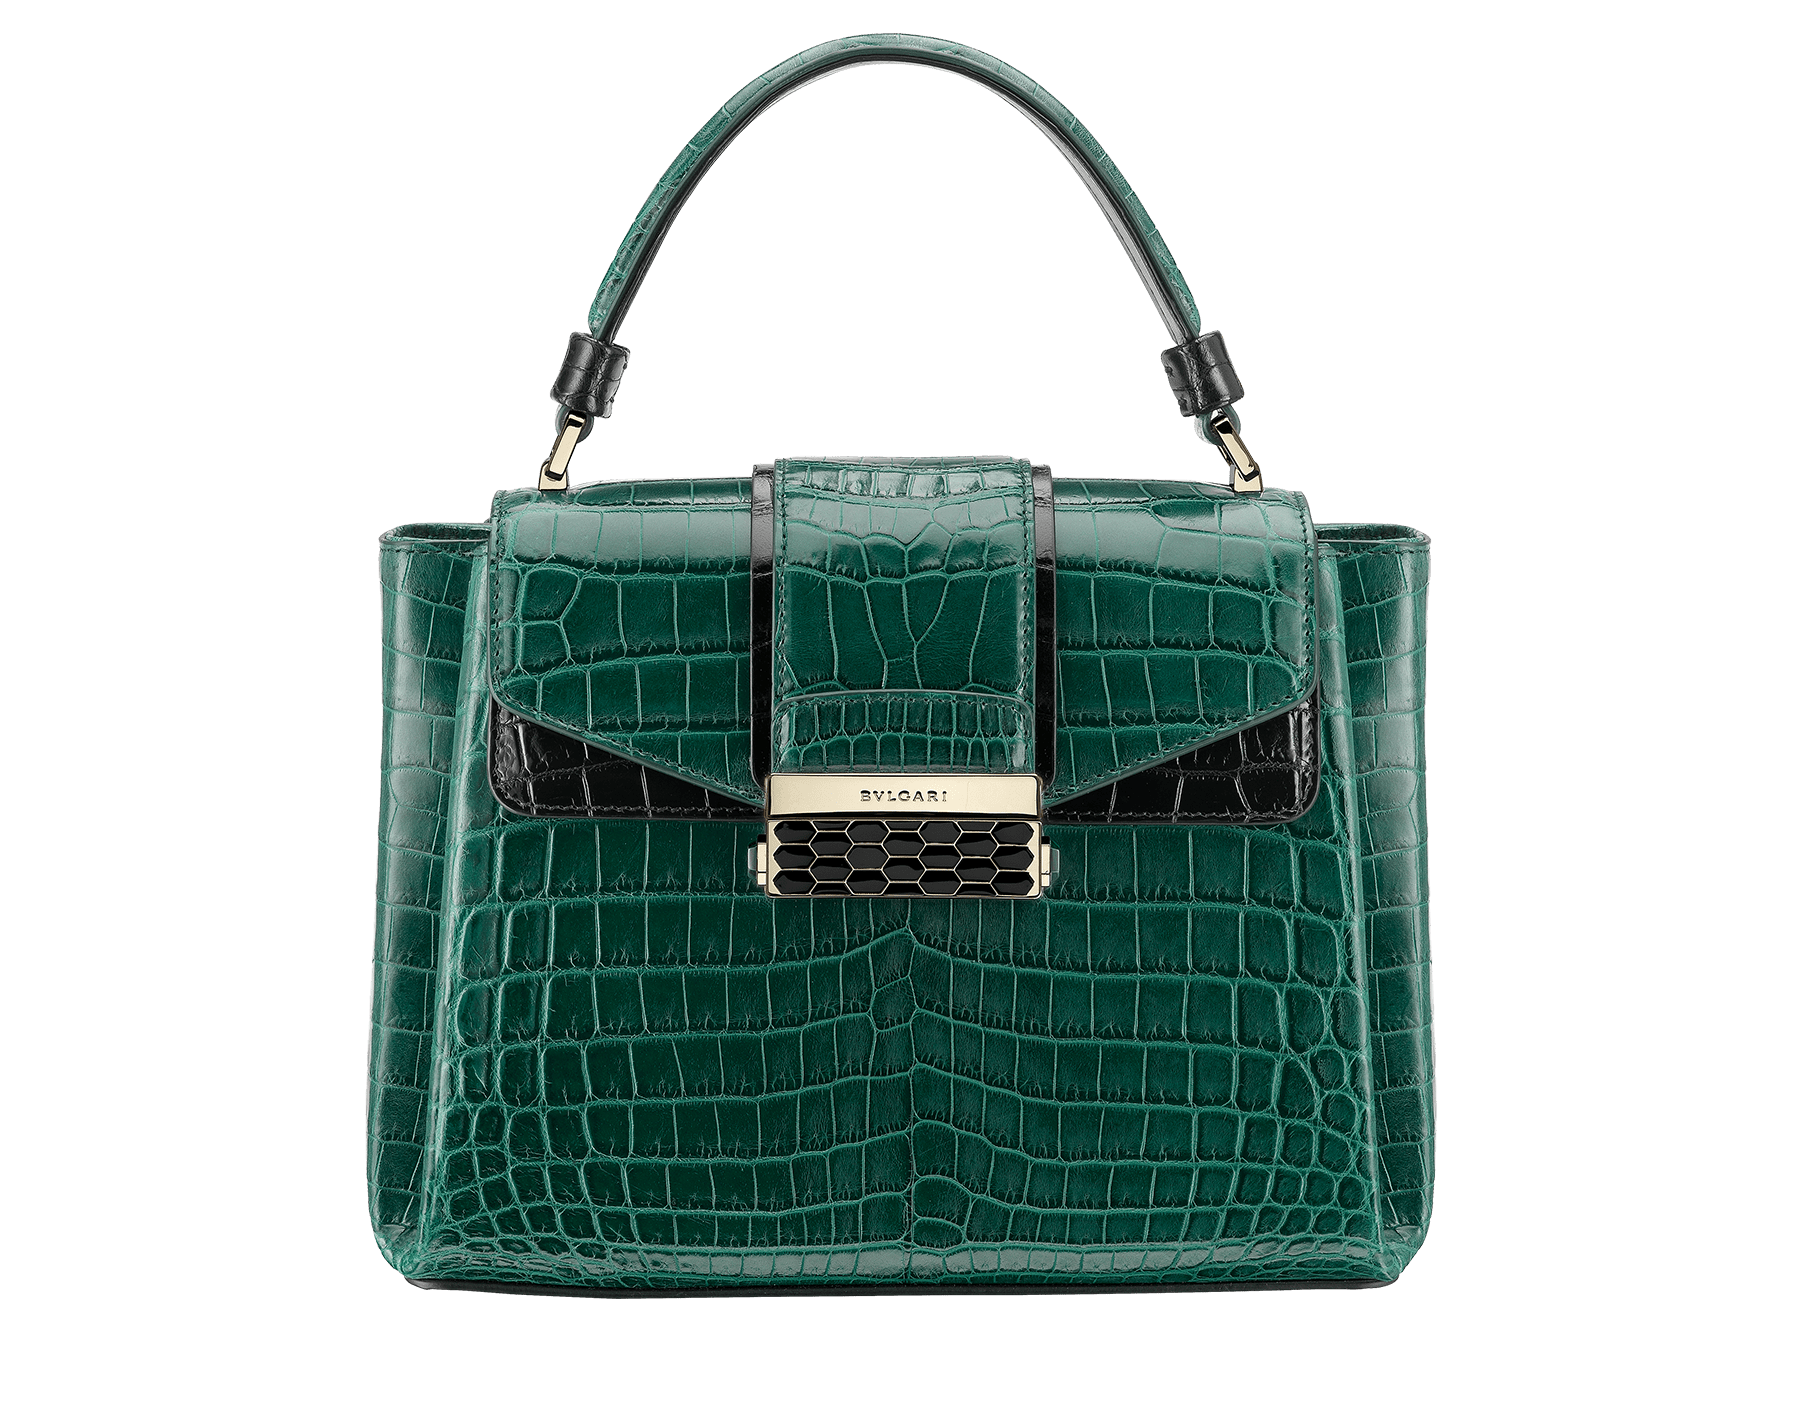 Top handle bag Serpenti Viper in forest emerald and black shiny croco skin, with black nappa internal lining. Brass light gold plated hardware and snap closure in black shiny enamel with iconic Scaglie design and lateral push buttons in green malachite stones. 286839 image 1